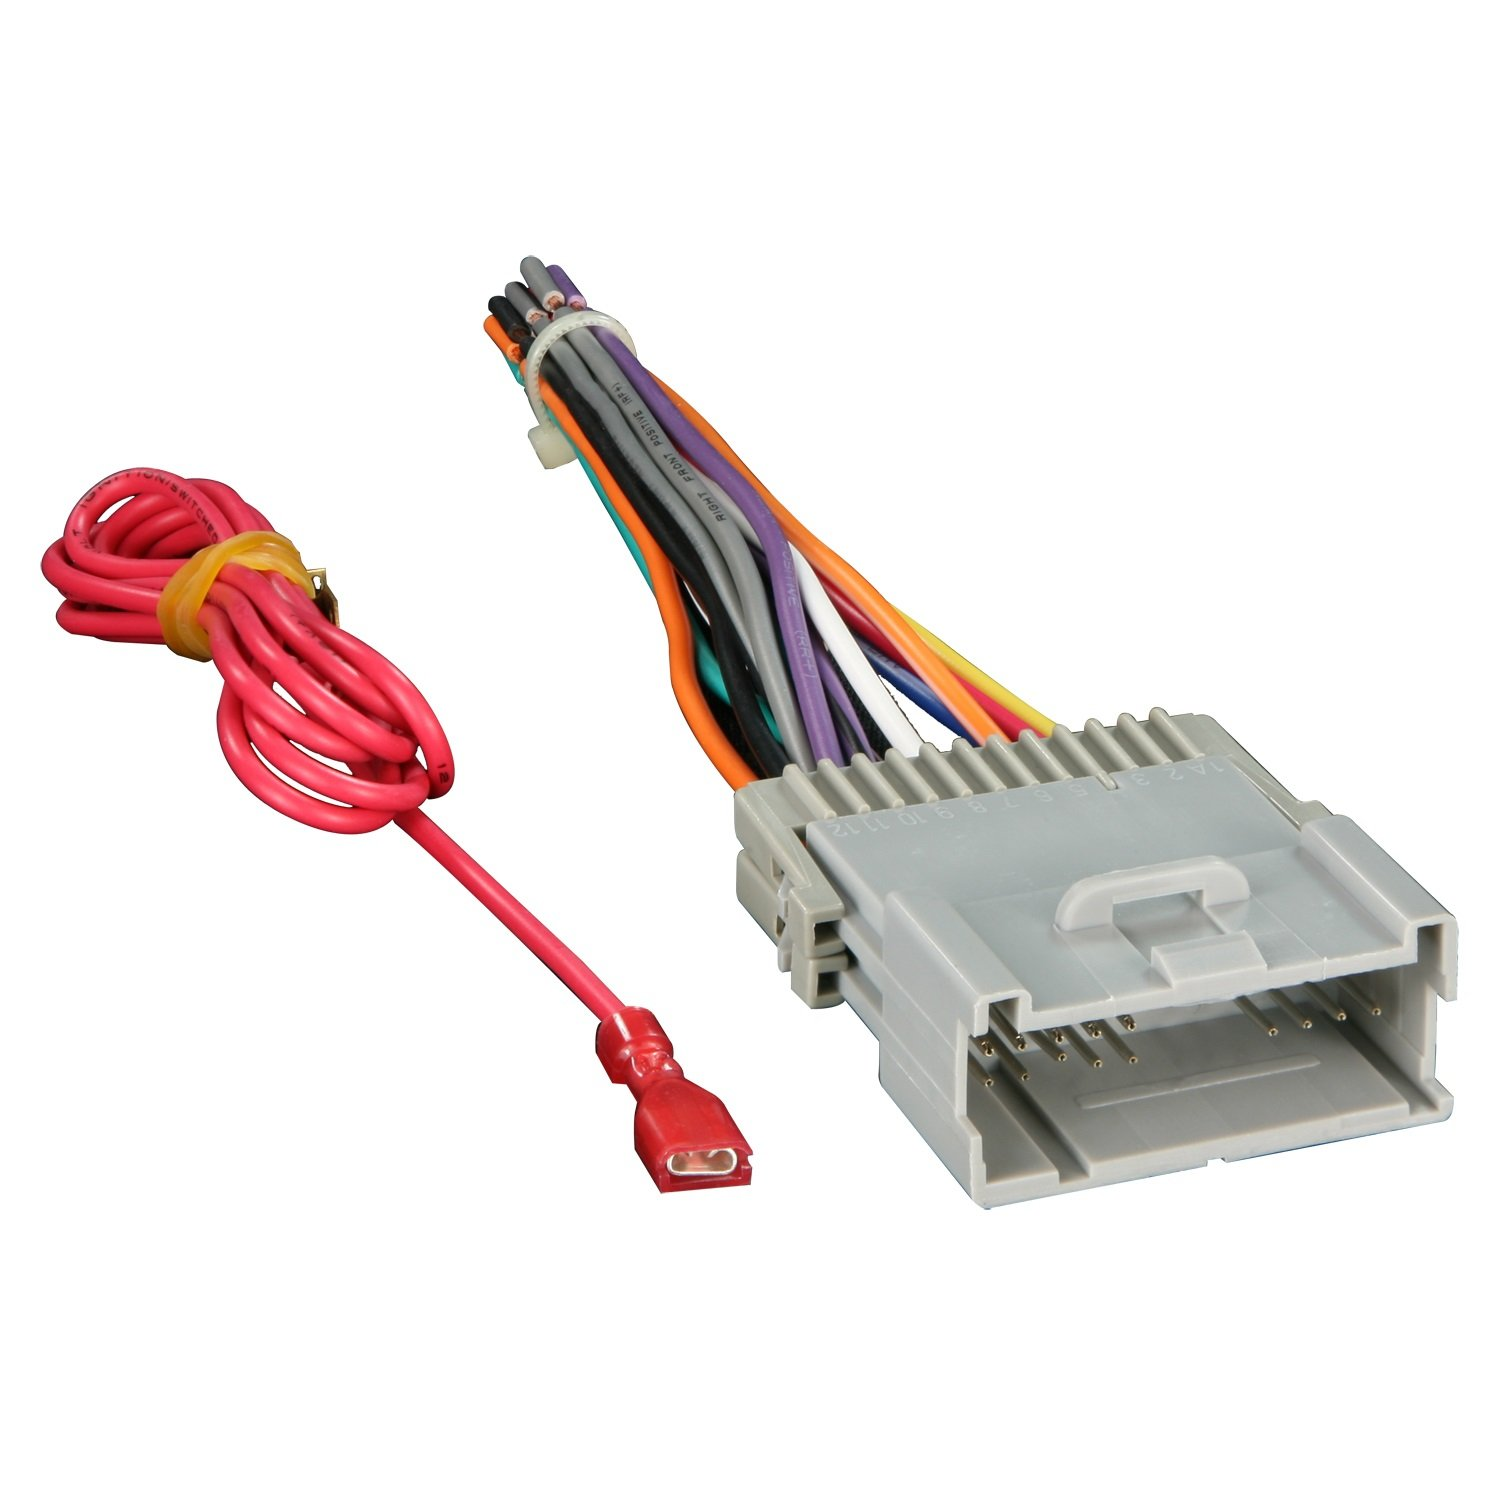 61eewxp9orL._SL1500_ amazon com metra 70 2003 radio wiring harness for gm 98 08 gm stereo wiring harness at readyjetset.co